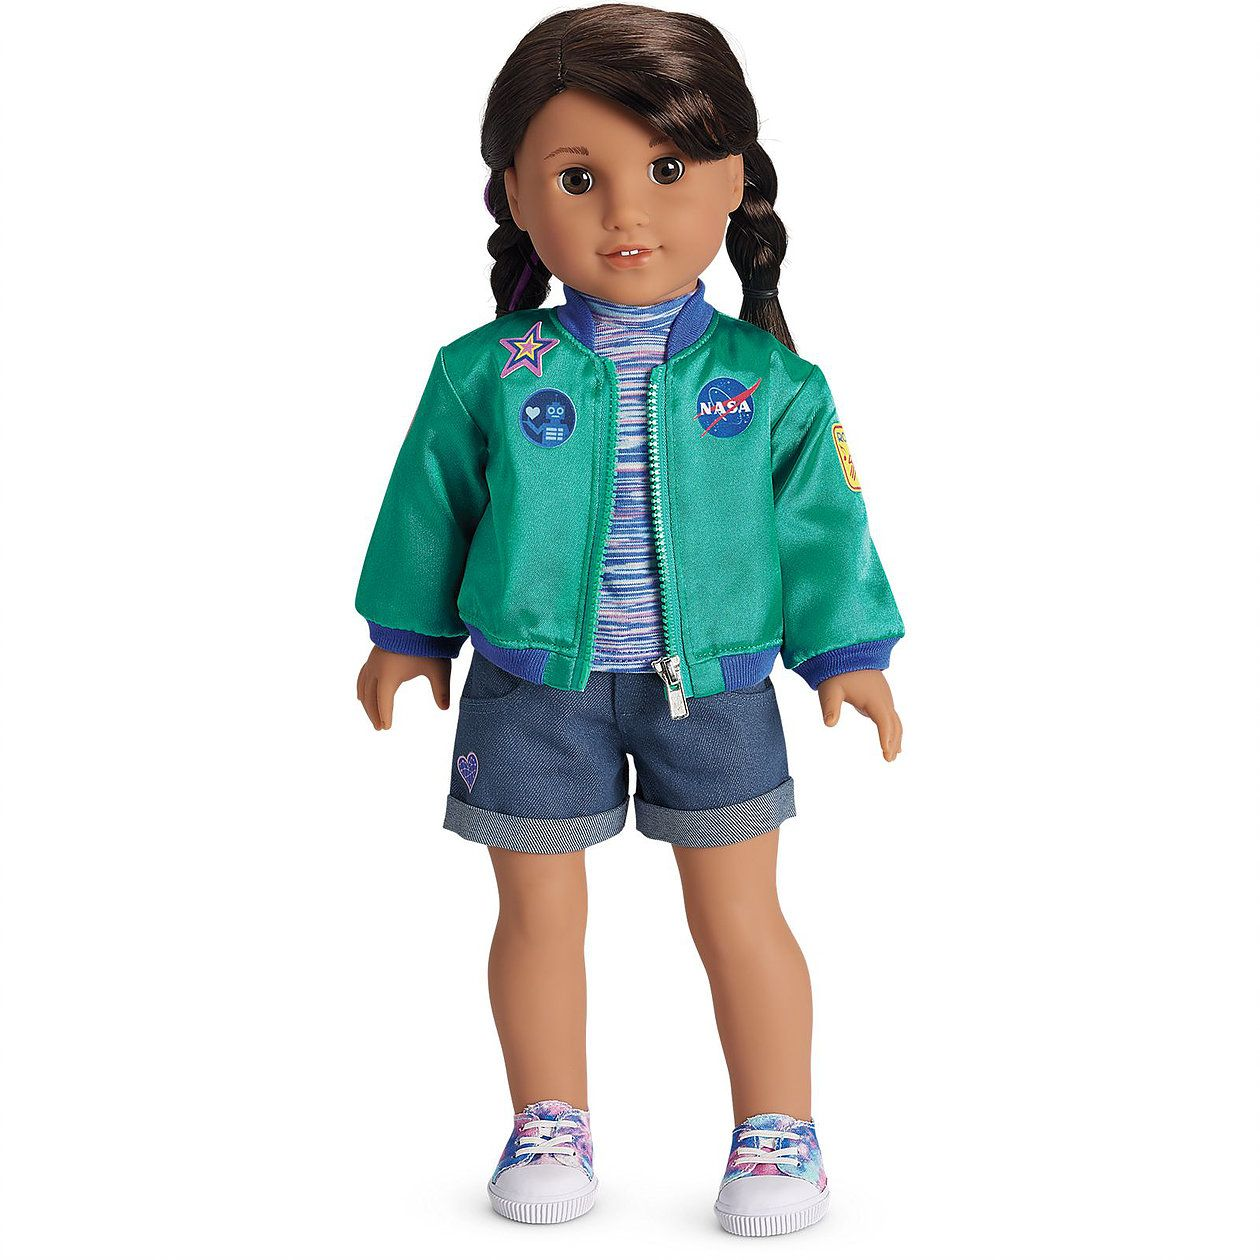 """American Girl Luciana Space Suit and Flight Suit for 18/"""" 2018 GOTY Doll New"""